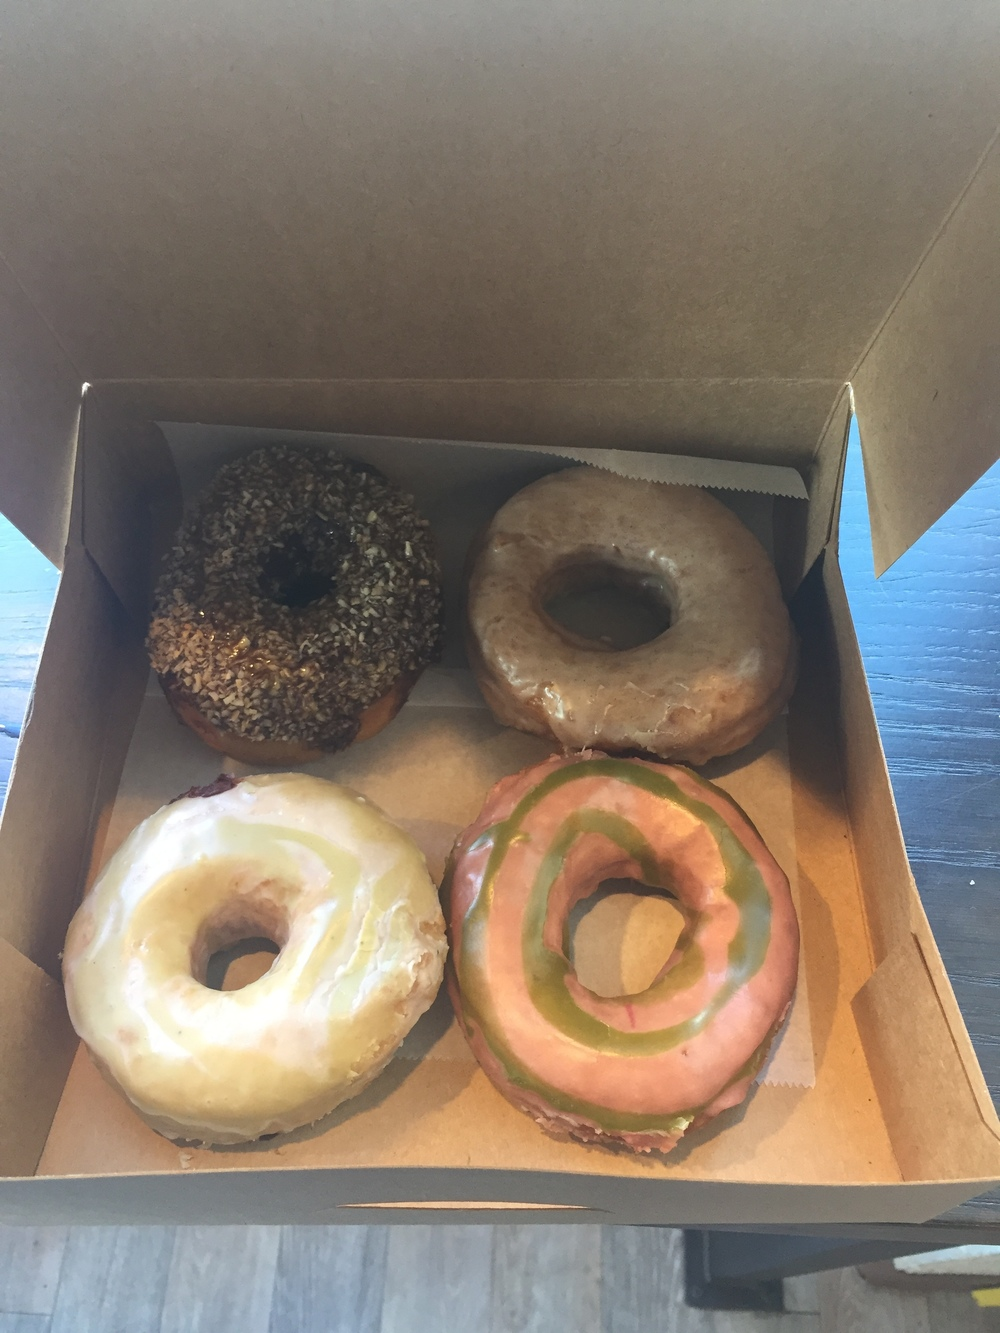 Vortex Donuts: A Must Have